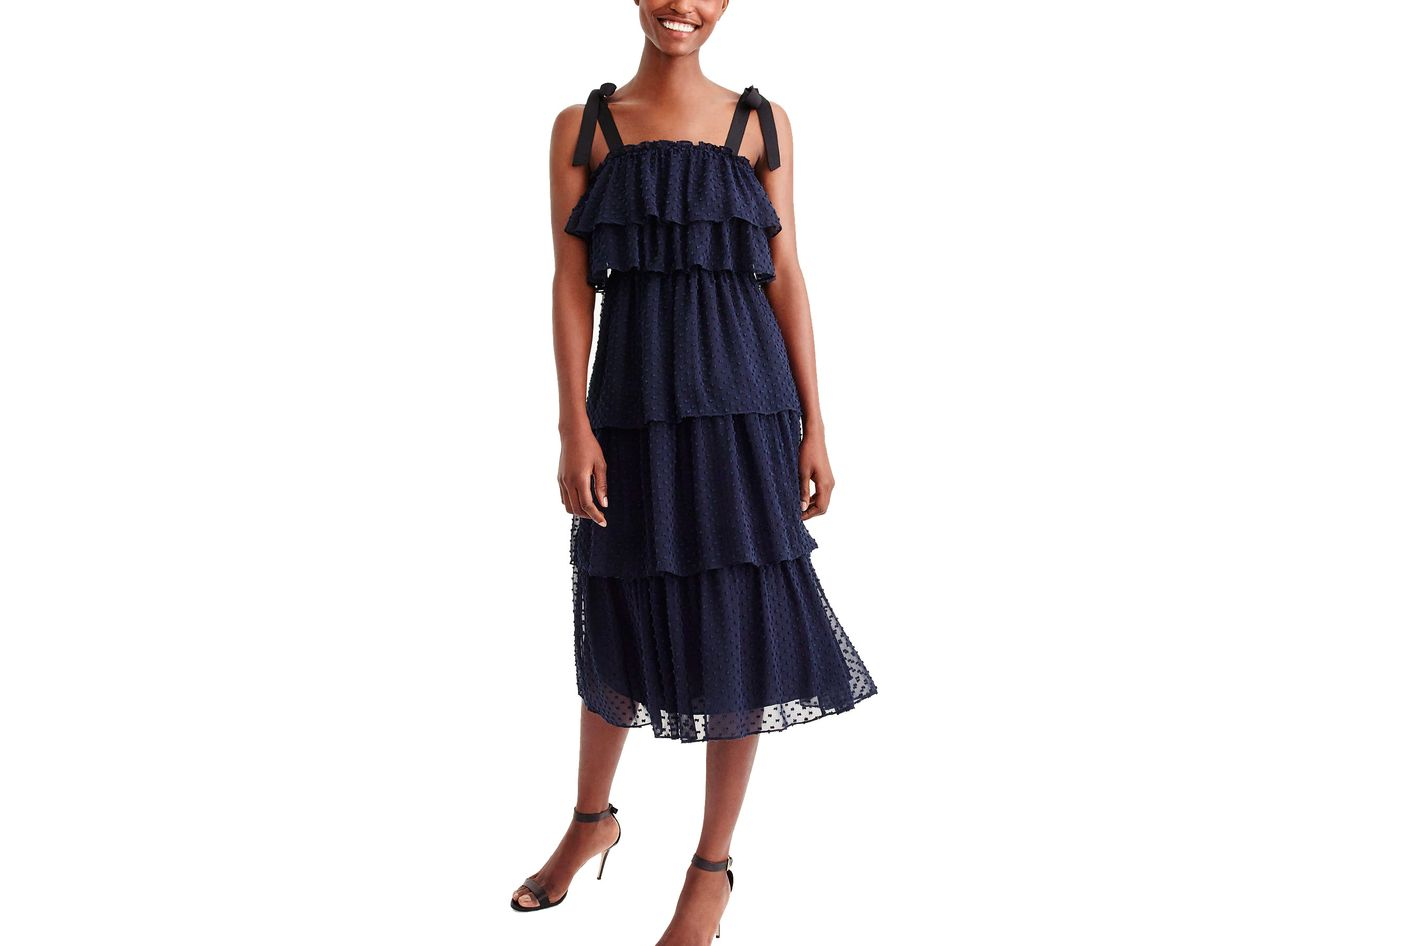 J. Crew Tiered Tie-Shoulder Dress